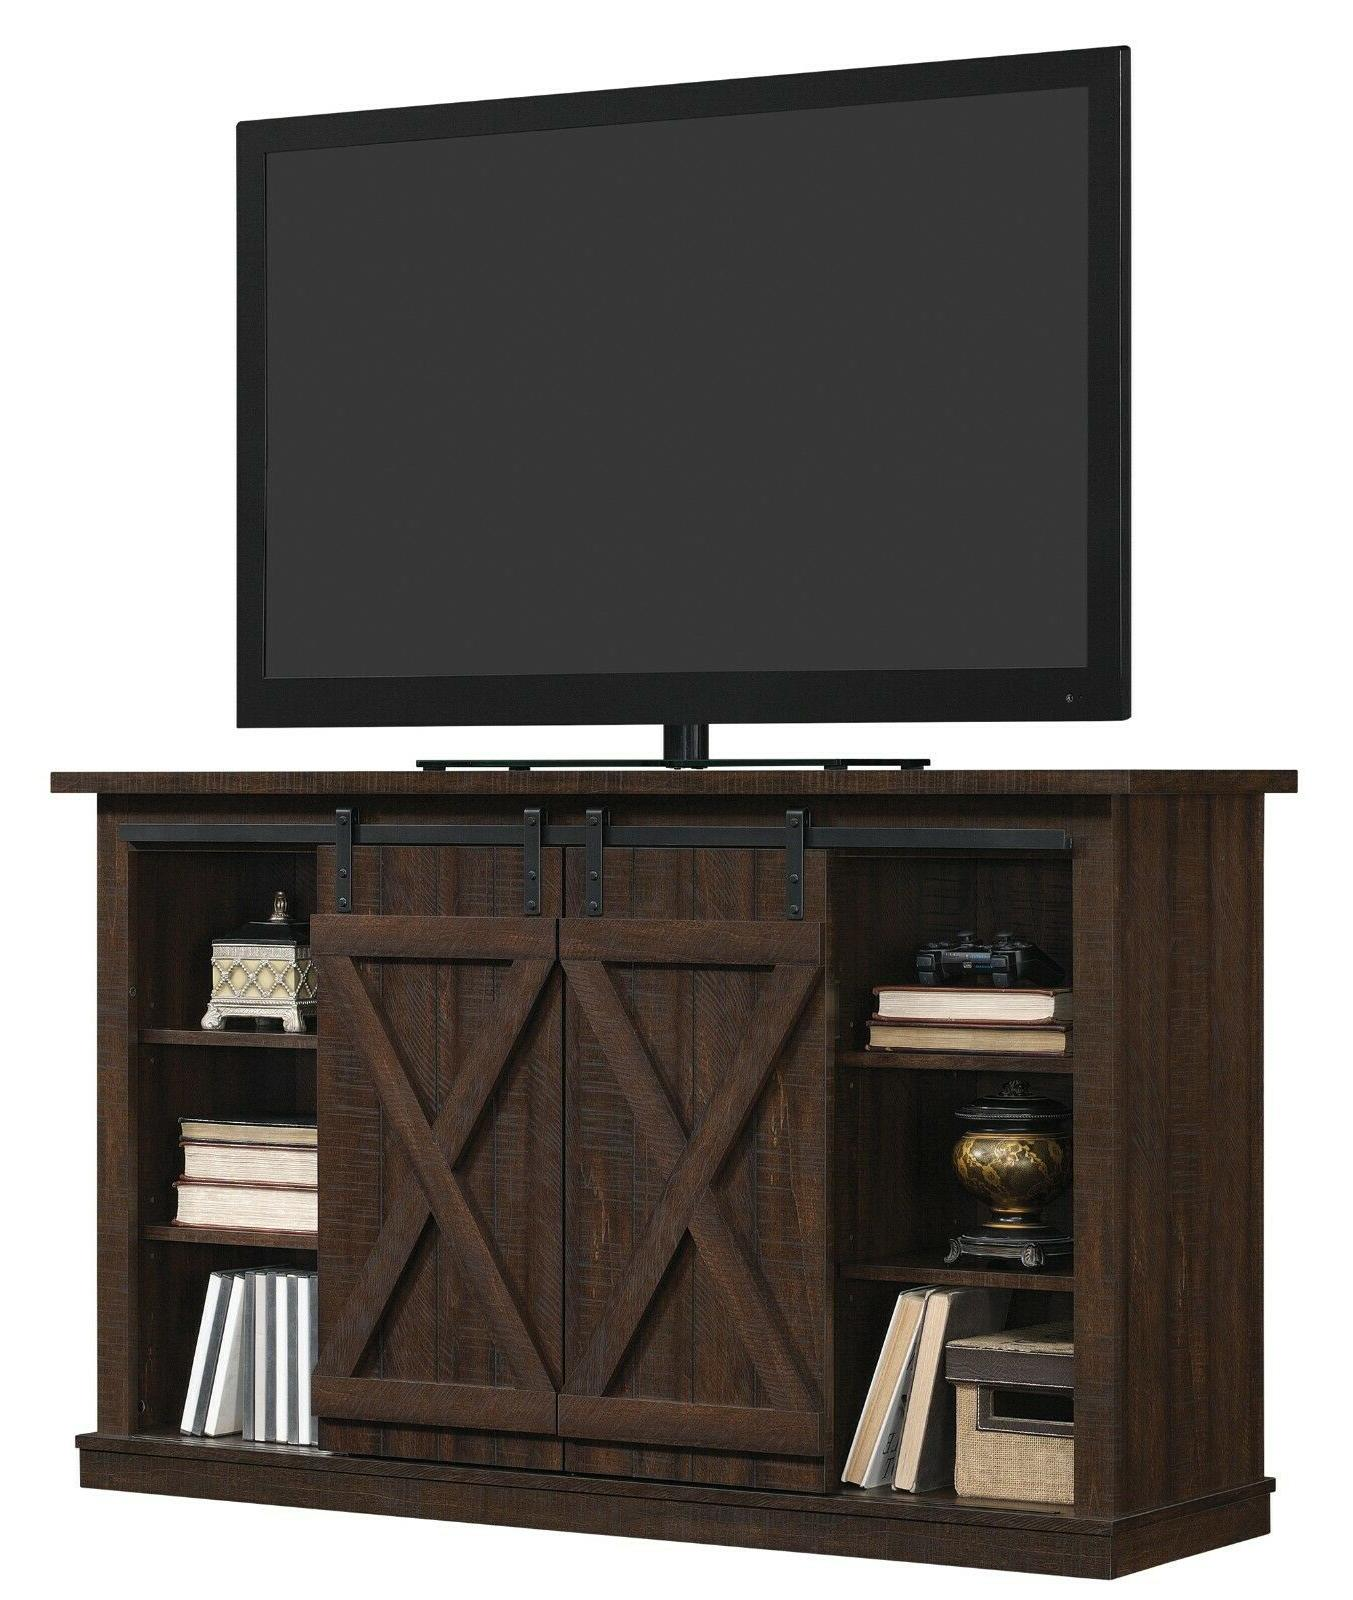 TV Entertainment Console Wood Barn Rustic